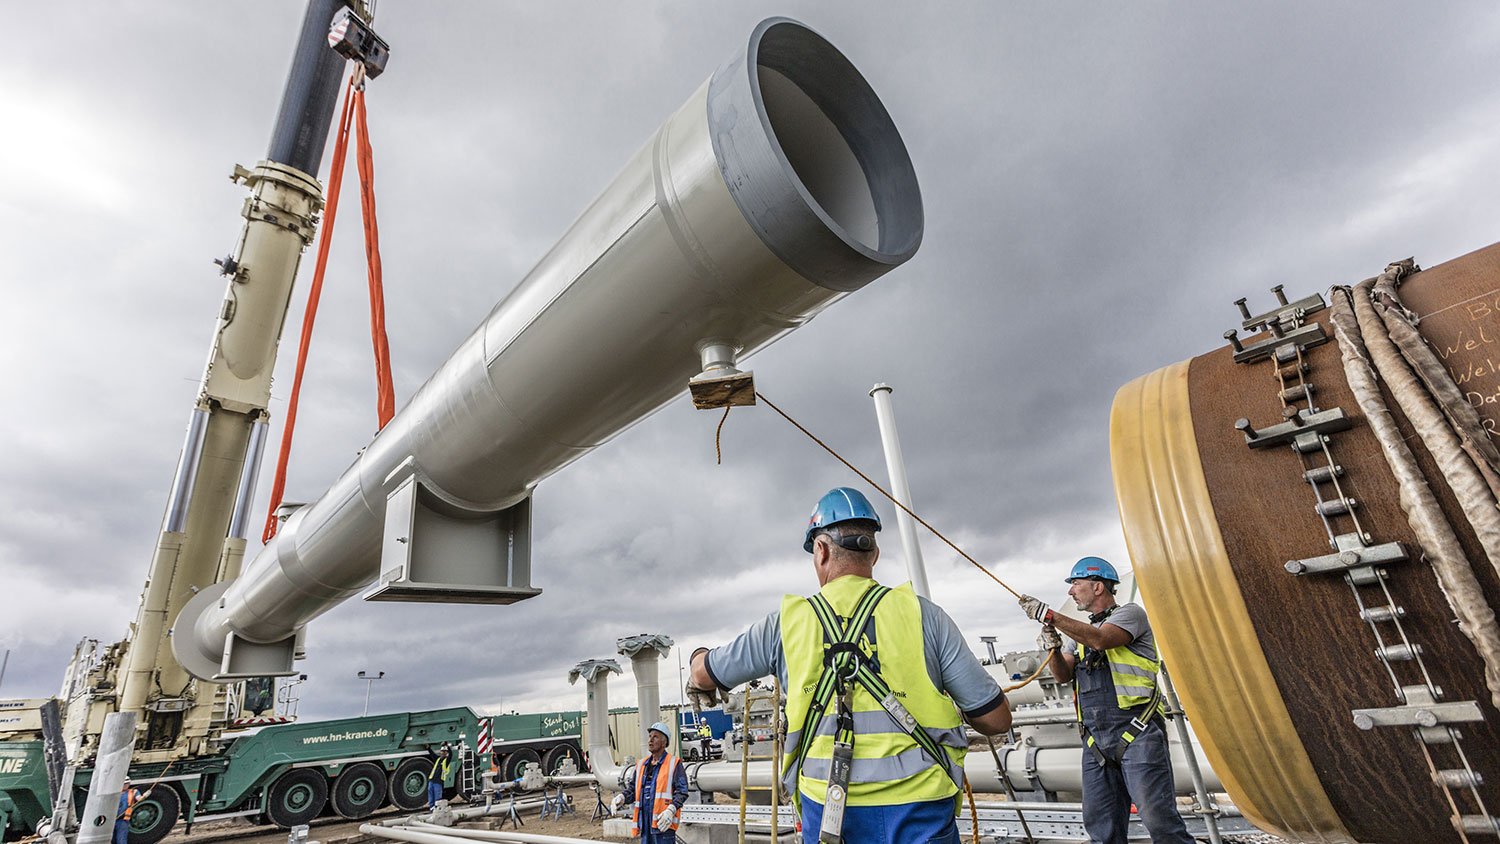 Russian government believes news of Nord Stream 2 reduces nervousness around ruble